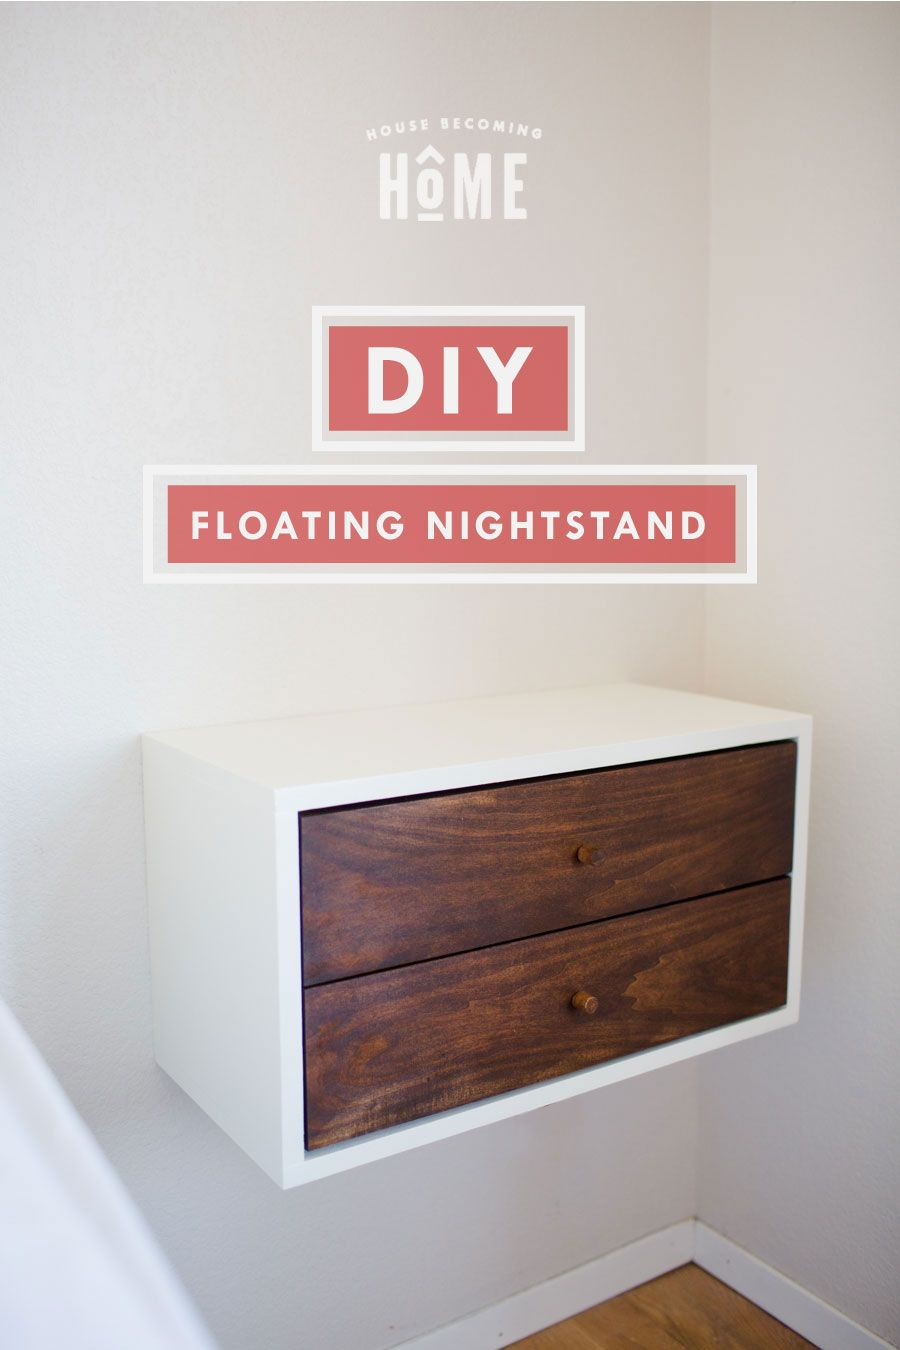 How To Build A Diy Floating Nightstand Full Tutorial And Instructions Diy Nightstand Floating Shelves Diy Floating Nightstand Diy